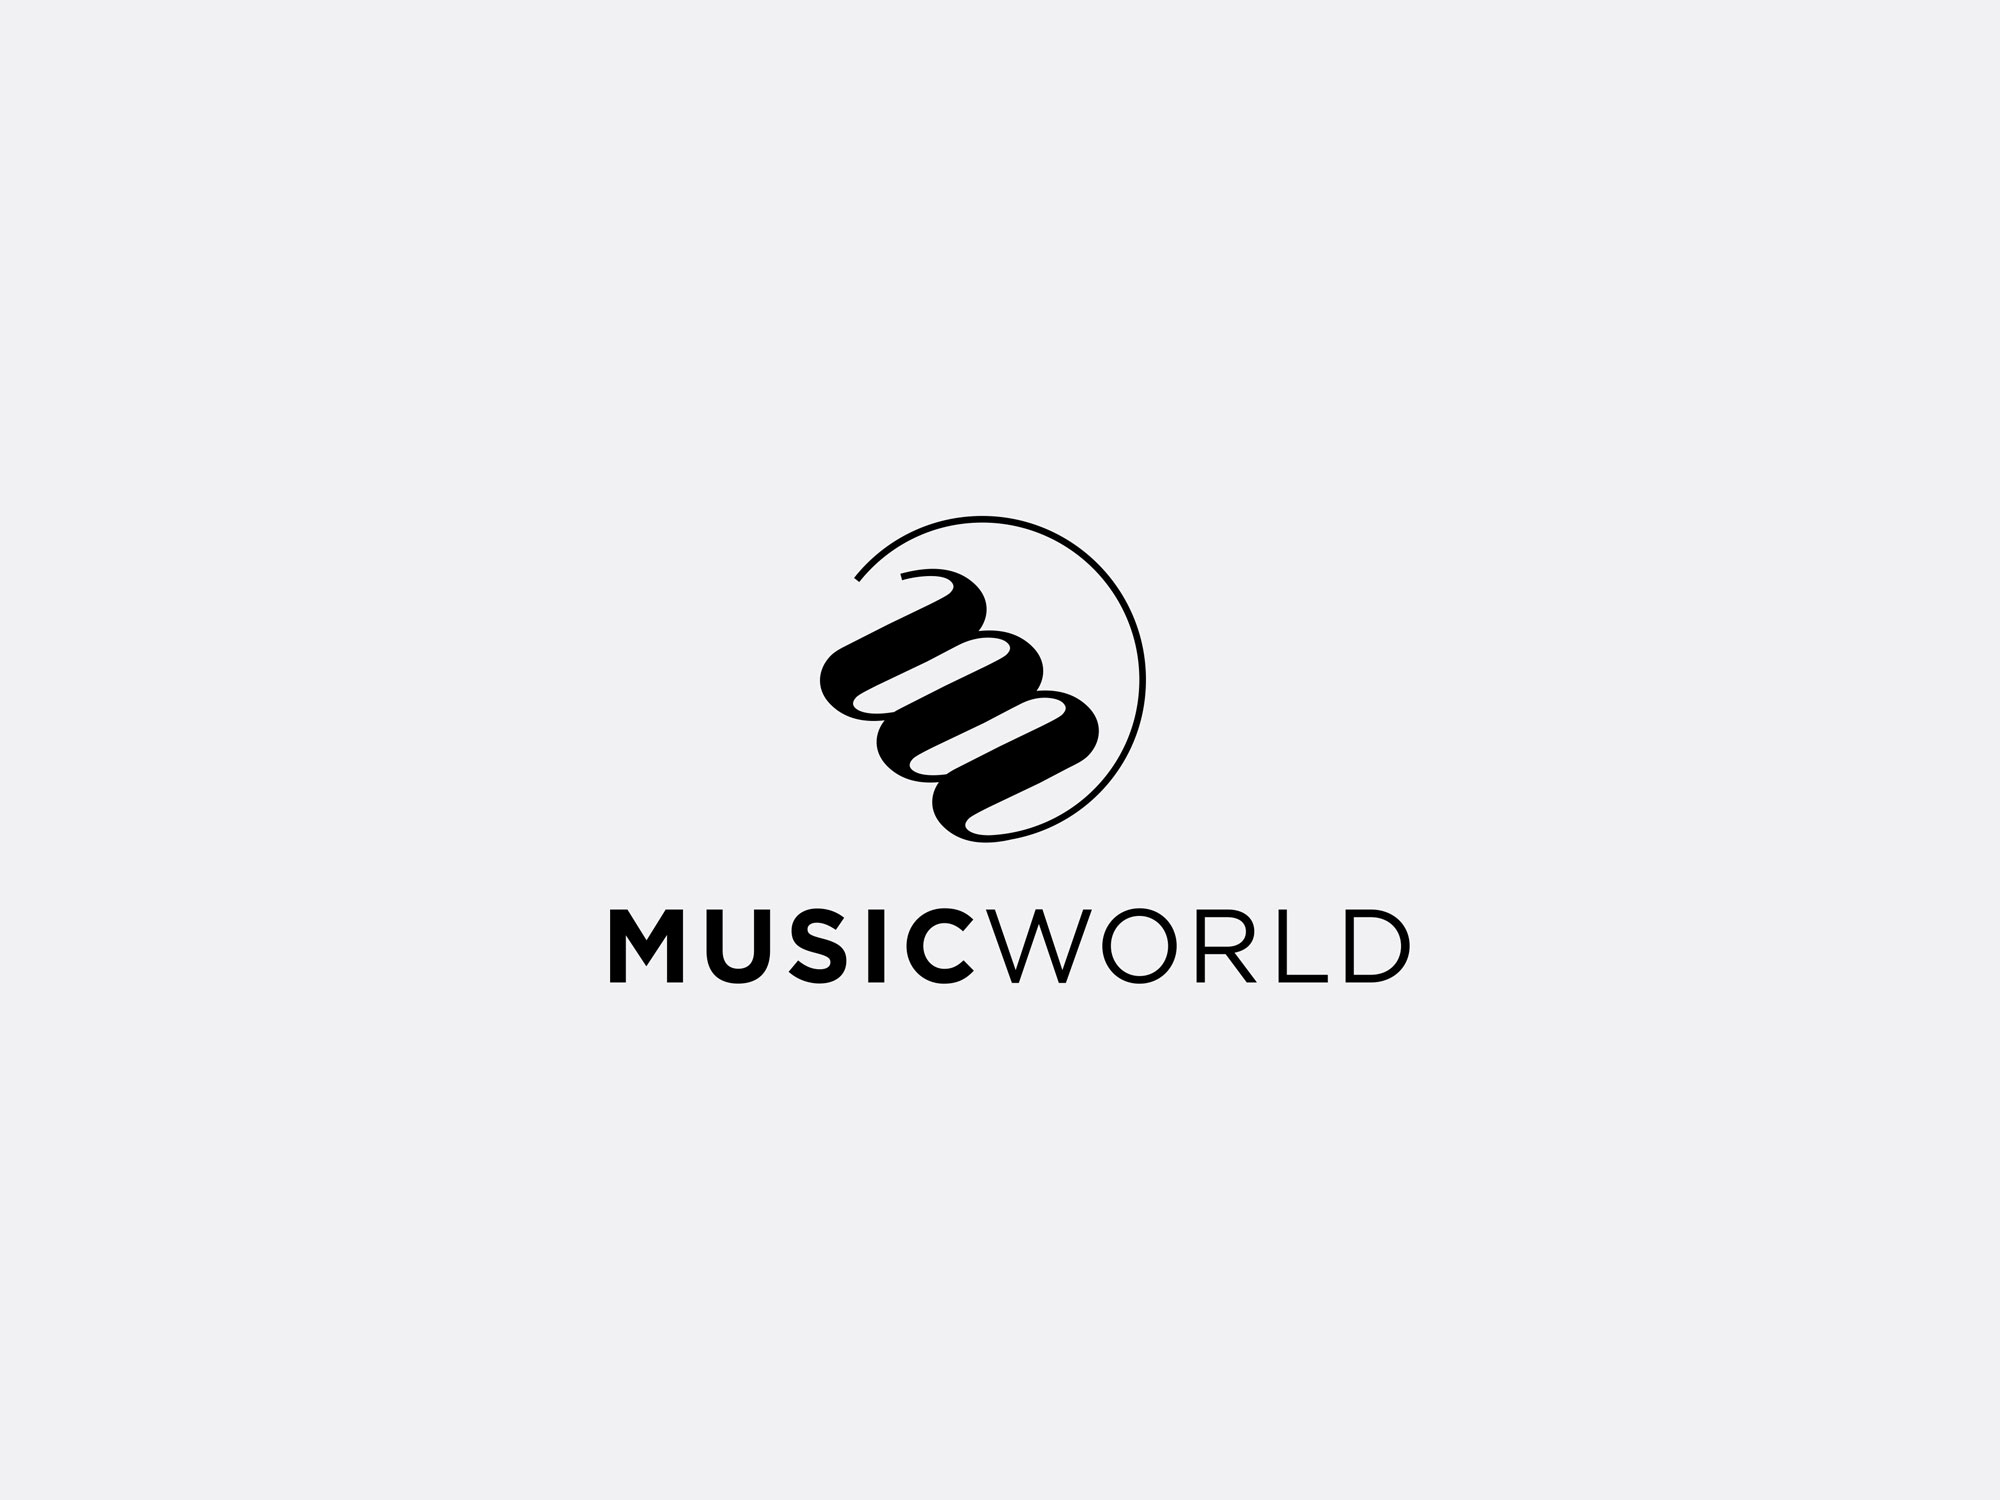 Musicworld_Gallery_2